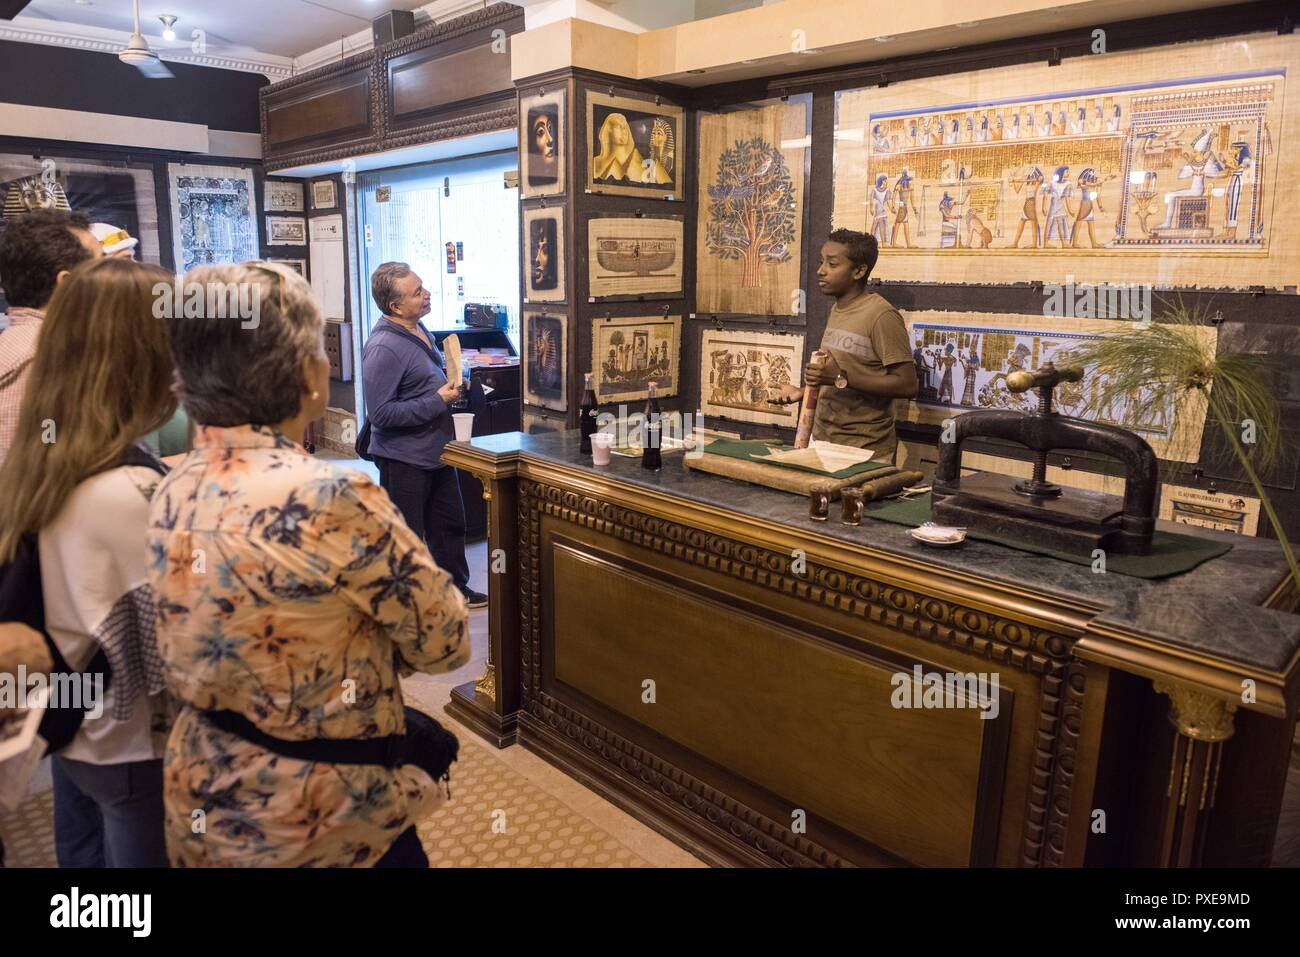 Giza, Egypt. 20th Oct, 2018. A shop assistant introduces the papyrus to tourists at a souvenir shop in Giza, Egypt, on Oct. 20, 2018. Made from papyrus plant stems, the papyrus was used for writing and drawing on by ancient Egyptians thousands years ago. Nowadays, with the ancient Egyptian writings and Pharaonic drawings, papyrus has always been an interesting souvenir bought by tourists in Egypt. Credit: Meng Tao/Xinhua/Alamy Live News - Stock Image